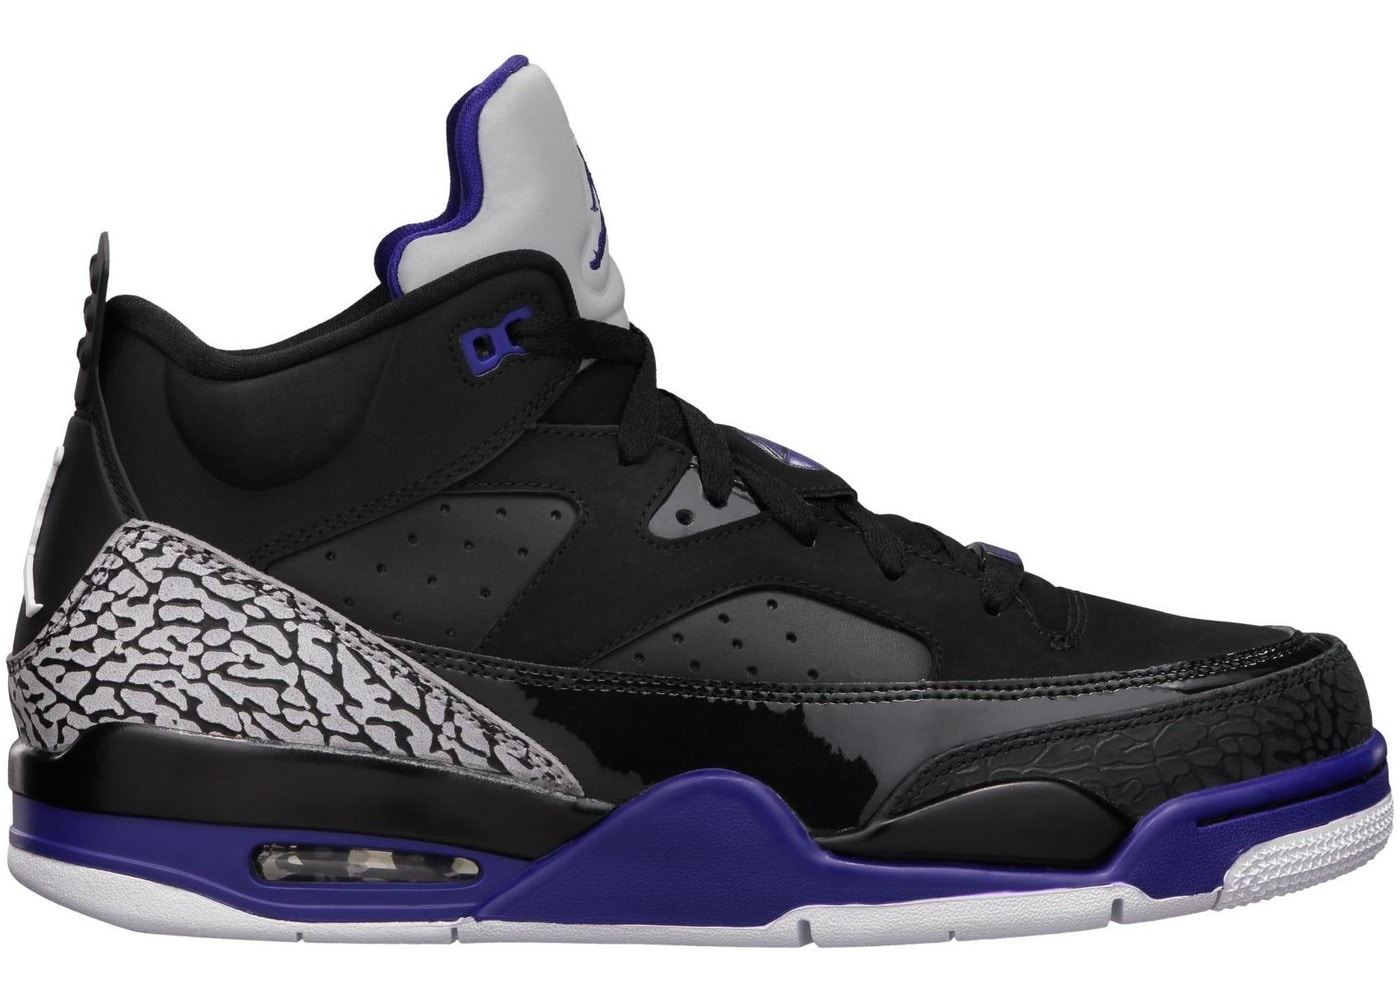 new concept 36a56 a8616 Jordan Son of Mars Low Black Grape